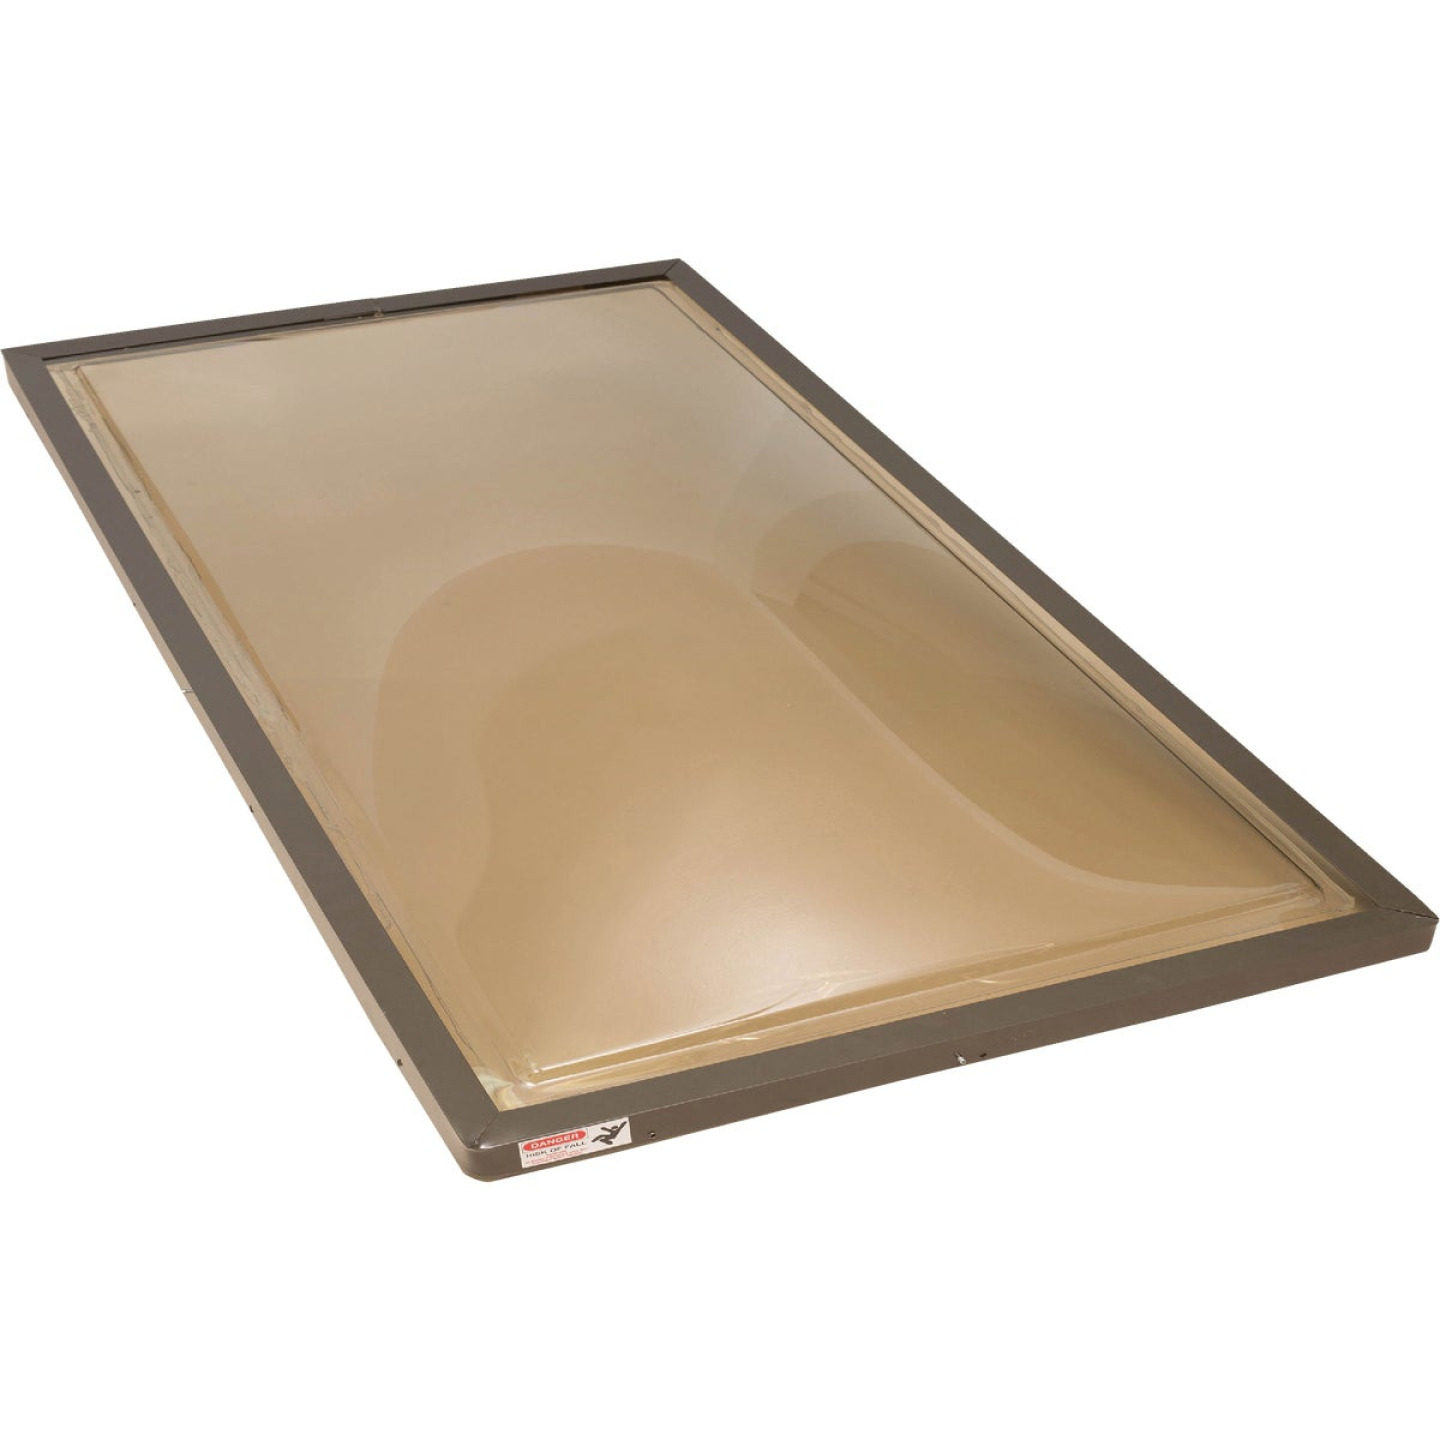 Kennedy Skylights 24 In. x 48 In. Bronze Aluminum Frame Curb Mount Skylight Image 1